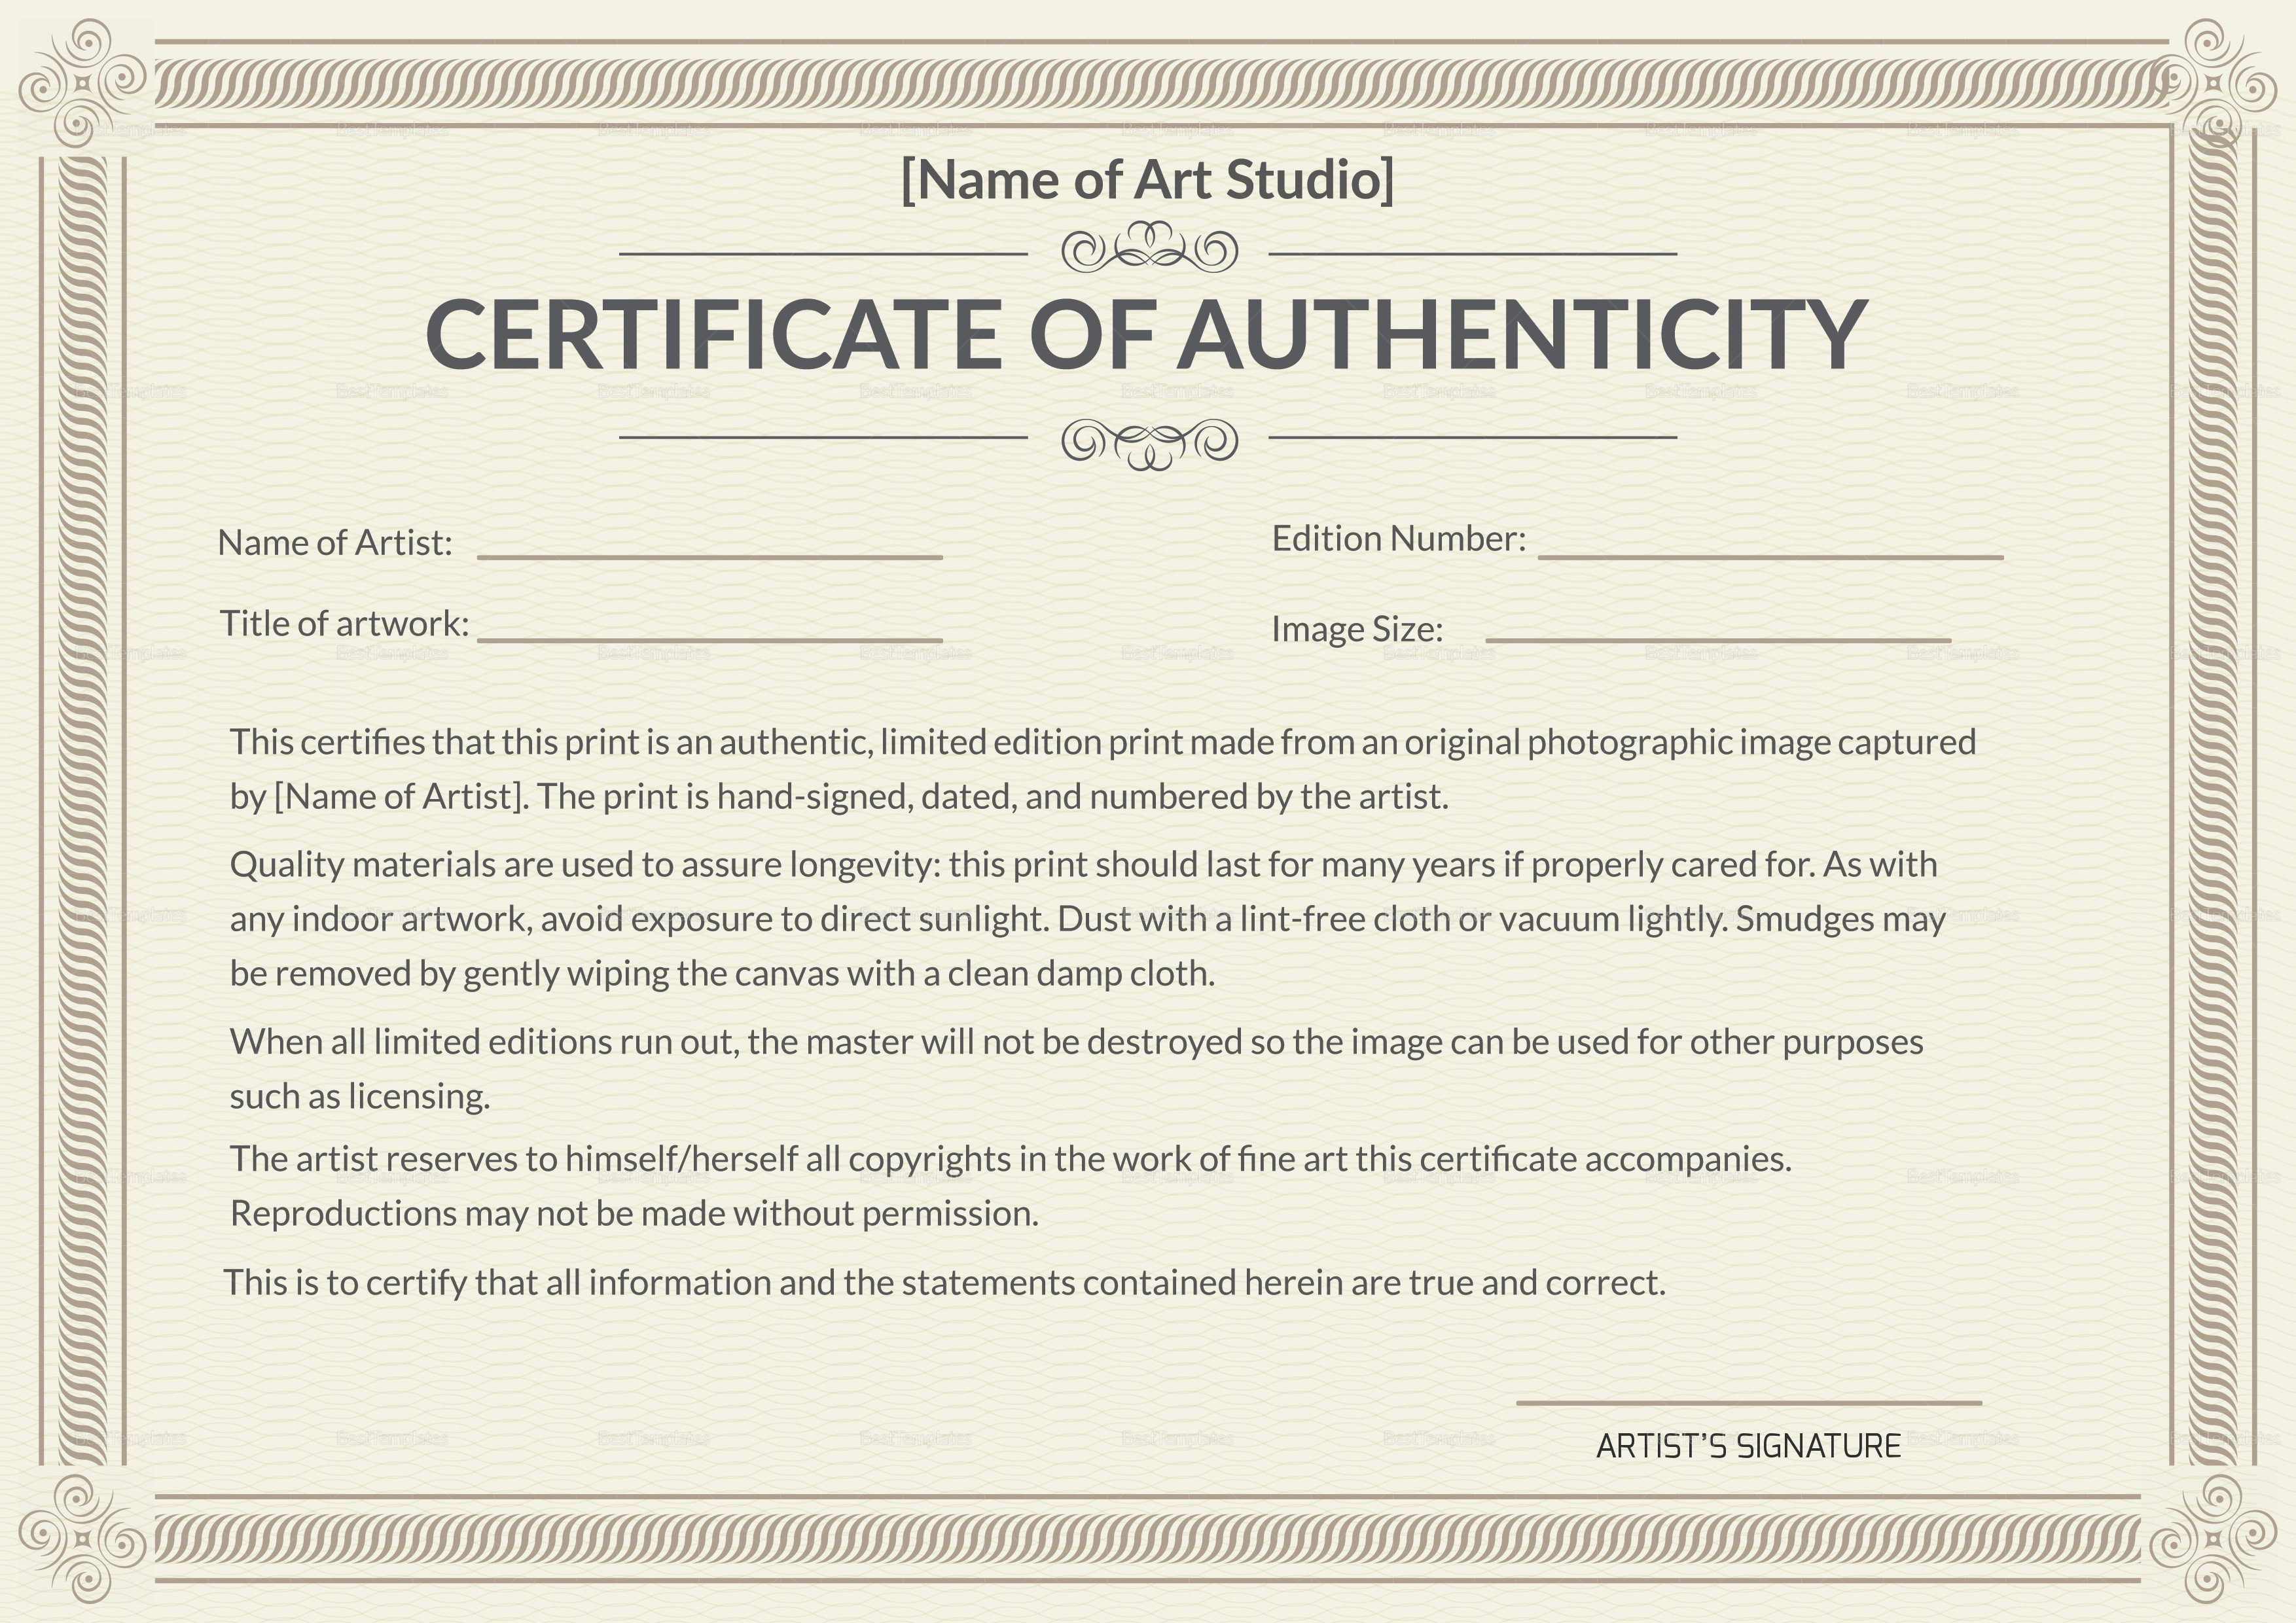 Certificate Of Authenticity Template Printable Authenticity Certificate Design Template In Psd